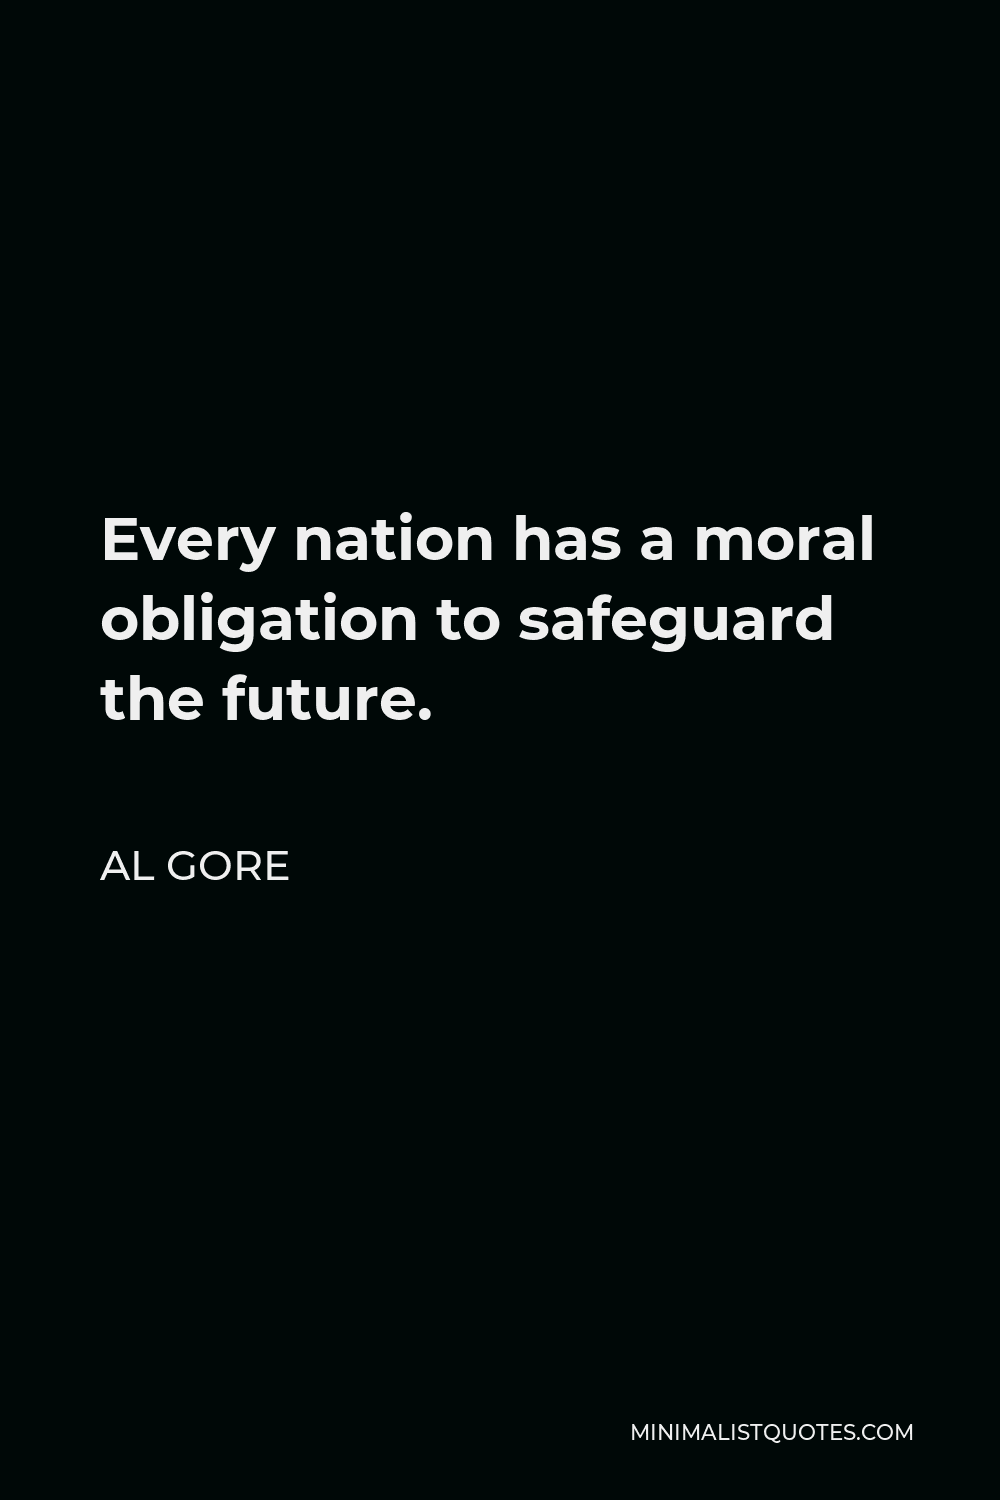 Al Gore Quote - Every nation has a moral obligation to safeguard the future.